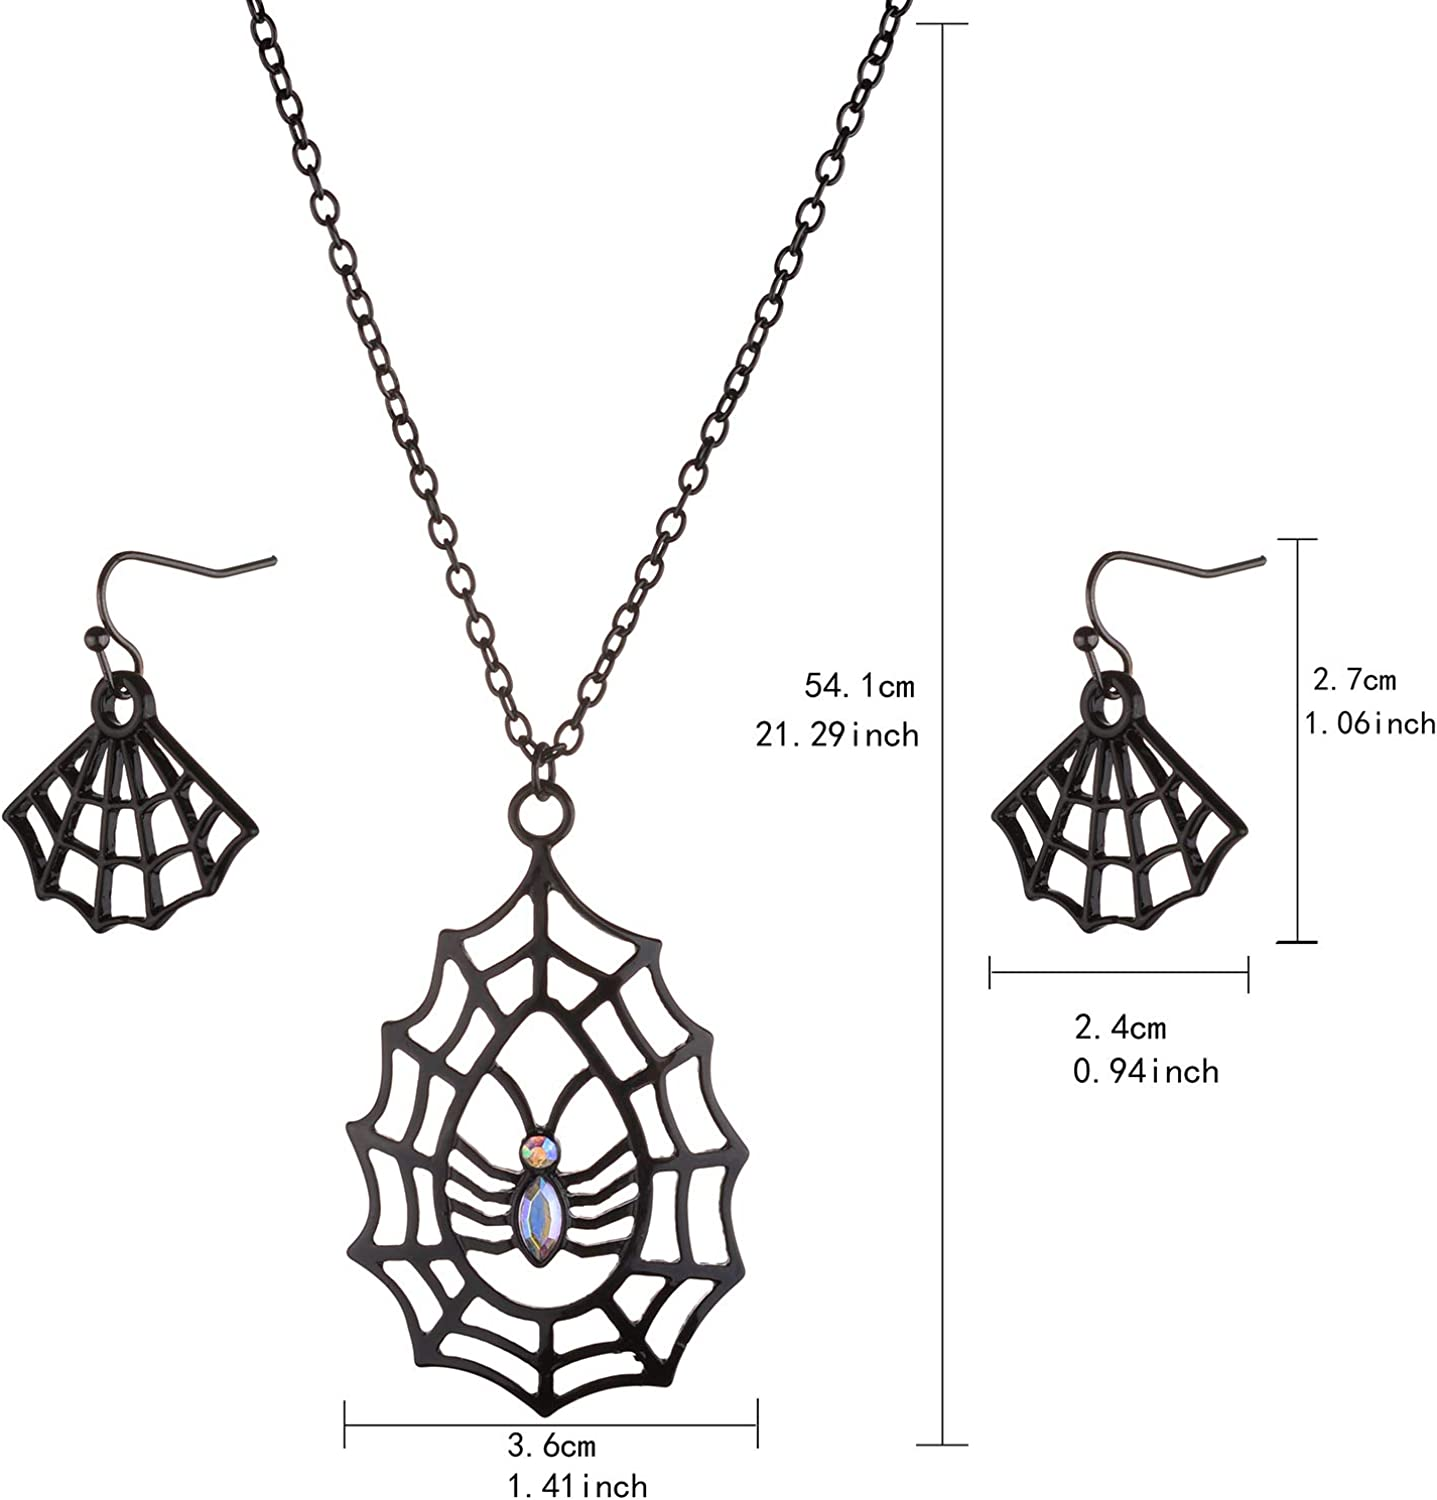 Lux Accessories Halloween Christmas Black Huge Spider Web Pendant Chain Necklace Set Dangle Earrings